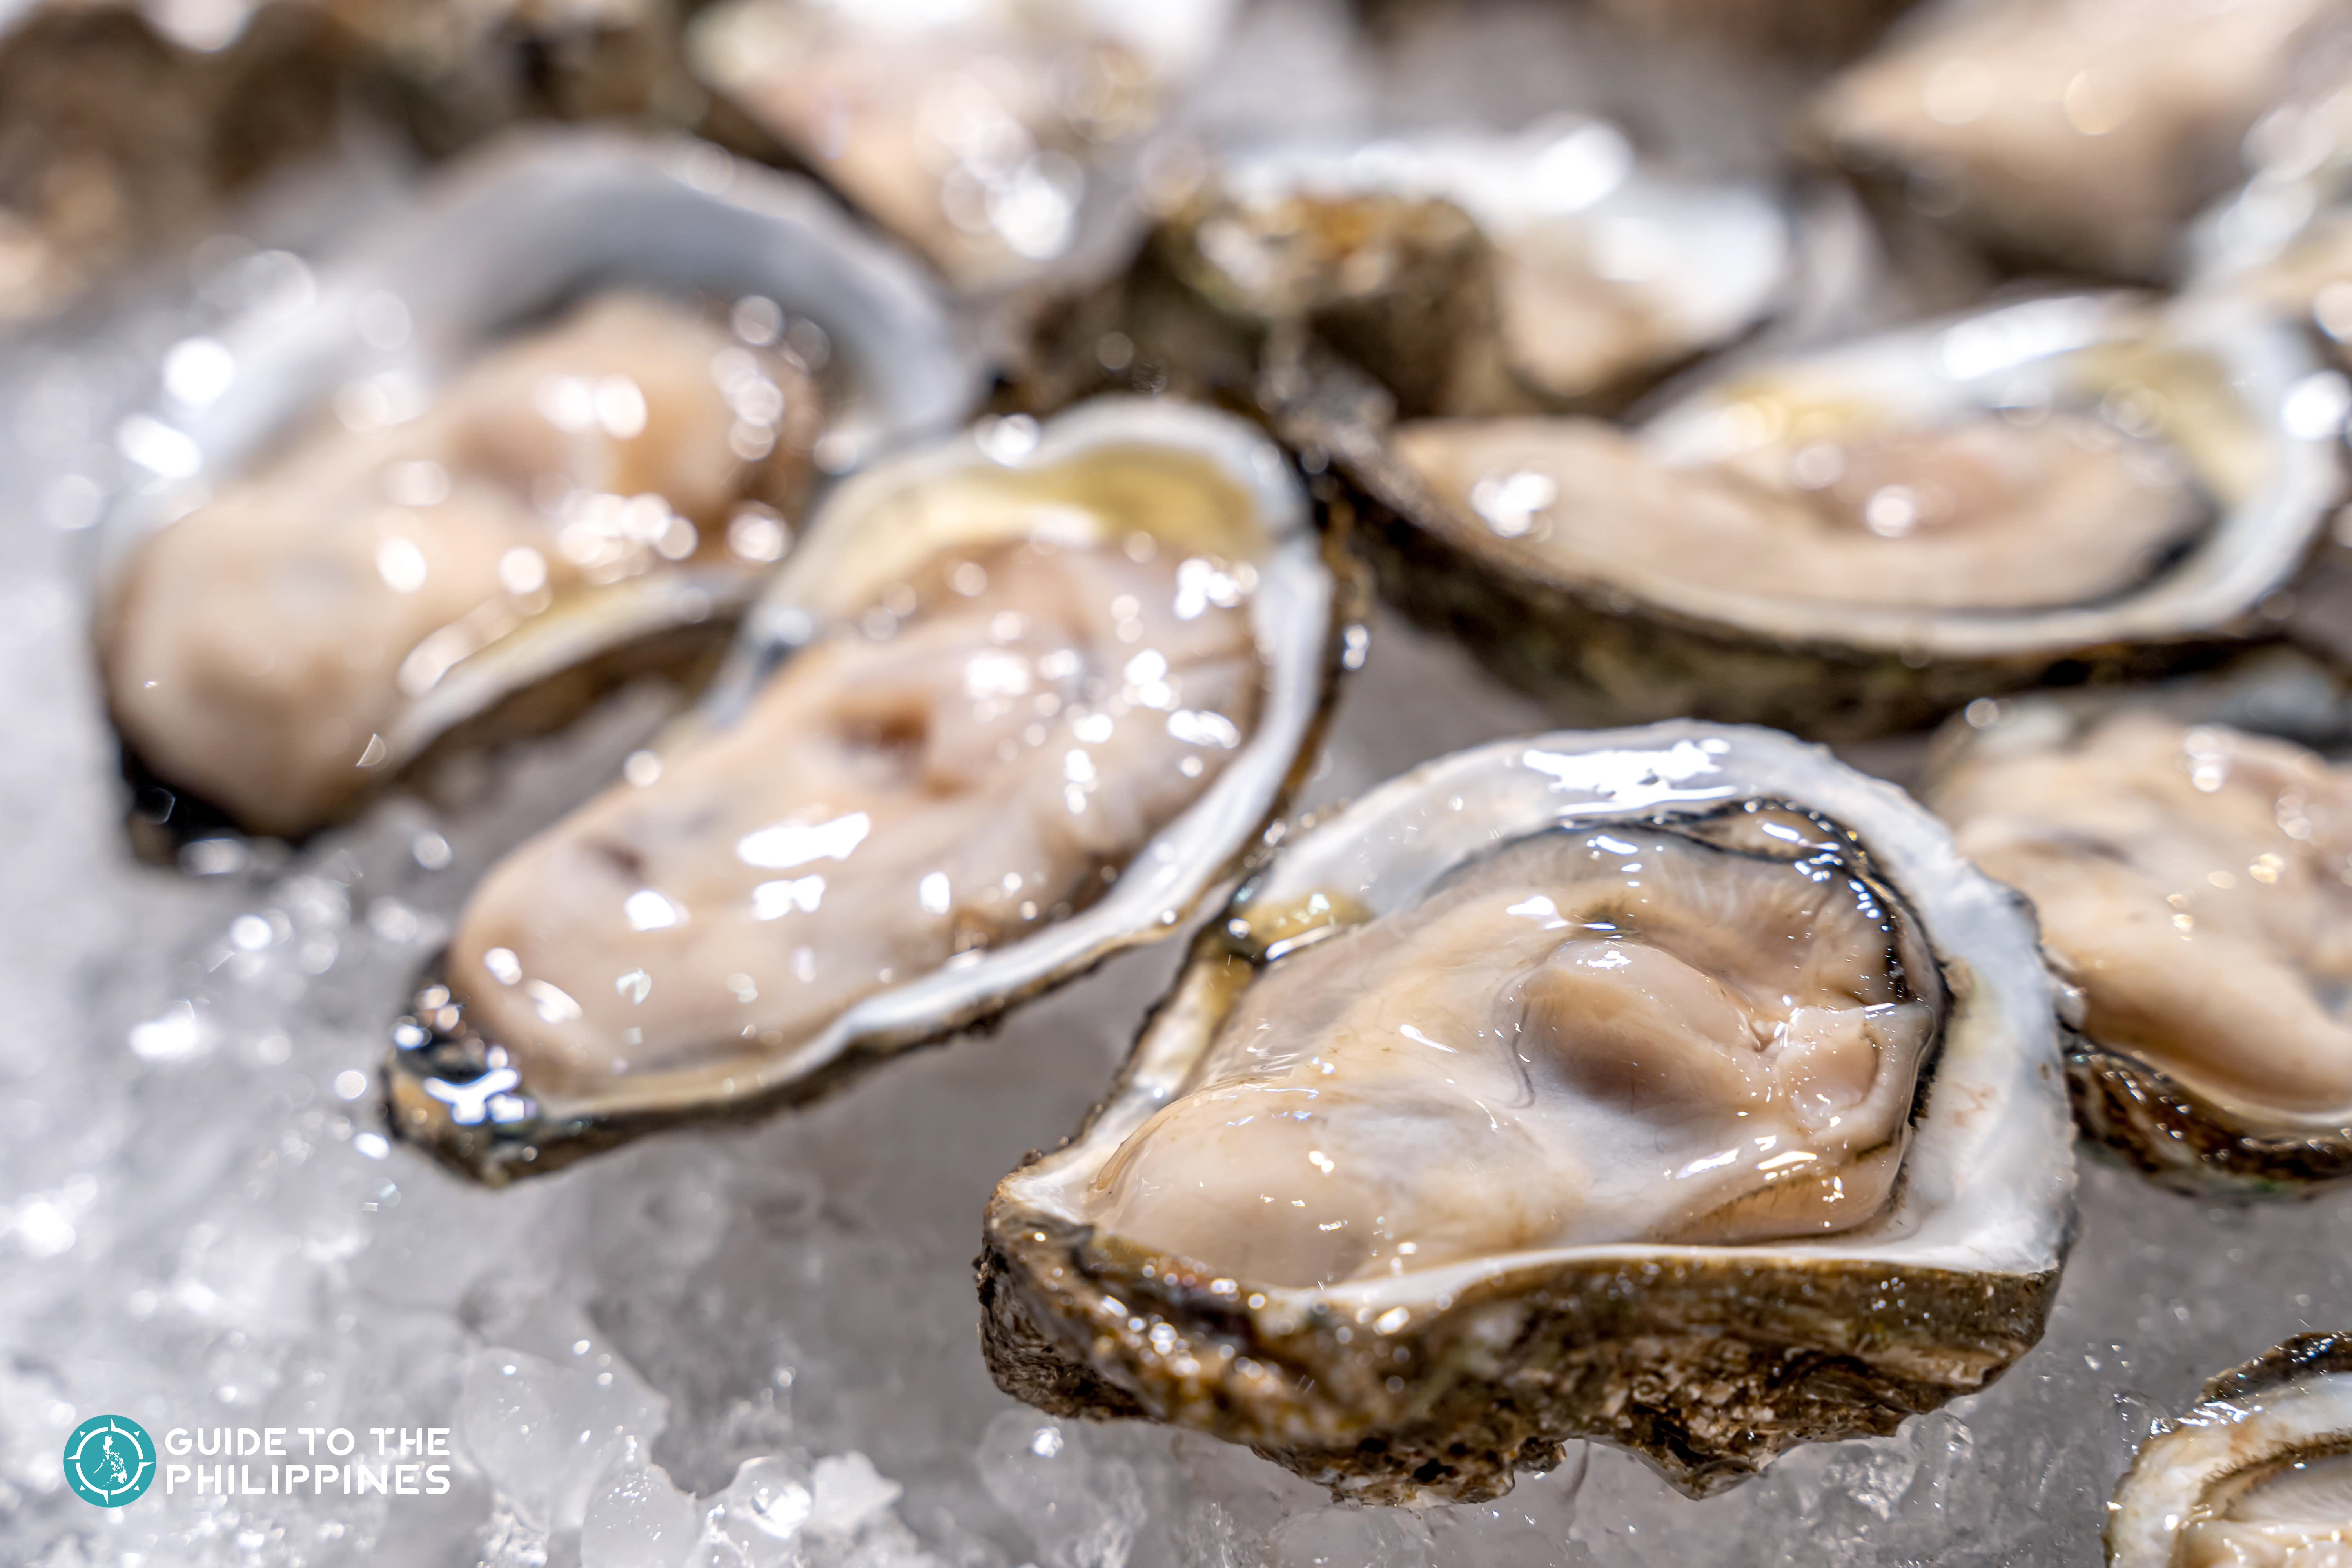 Fresh oysters from Cambuhat Oyster Farm